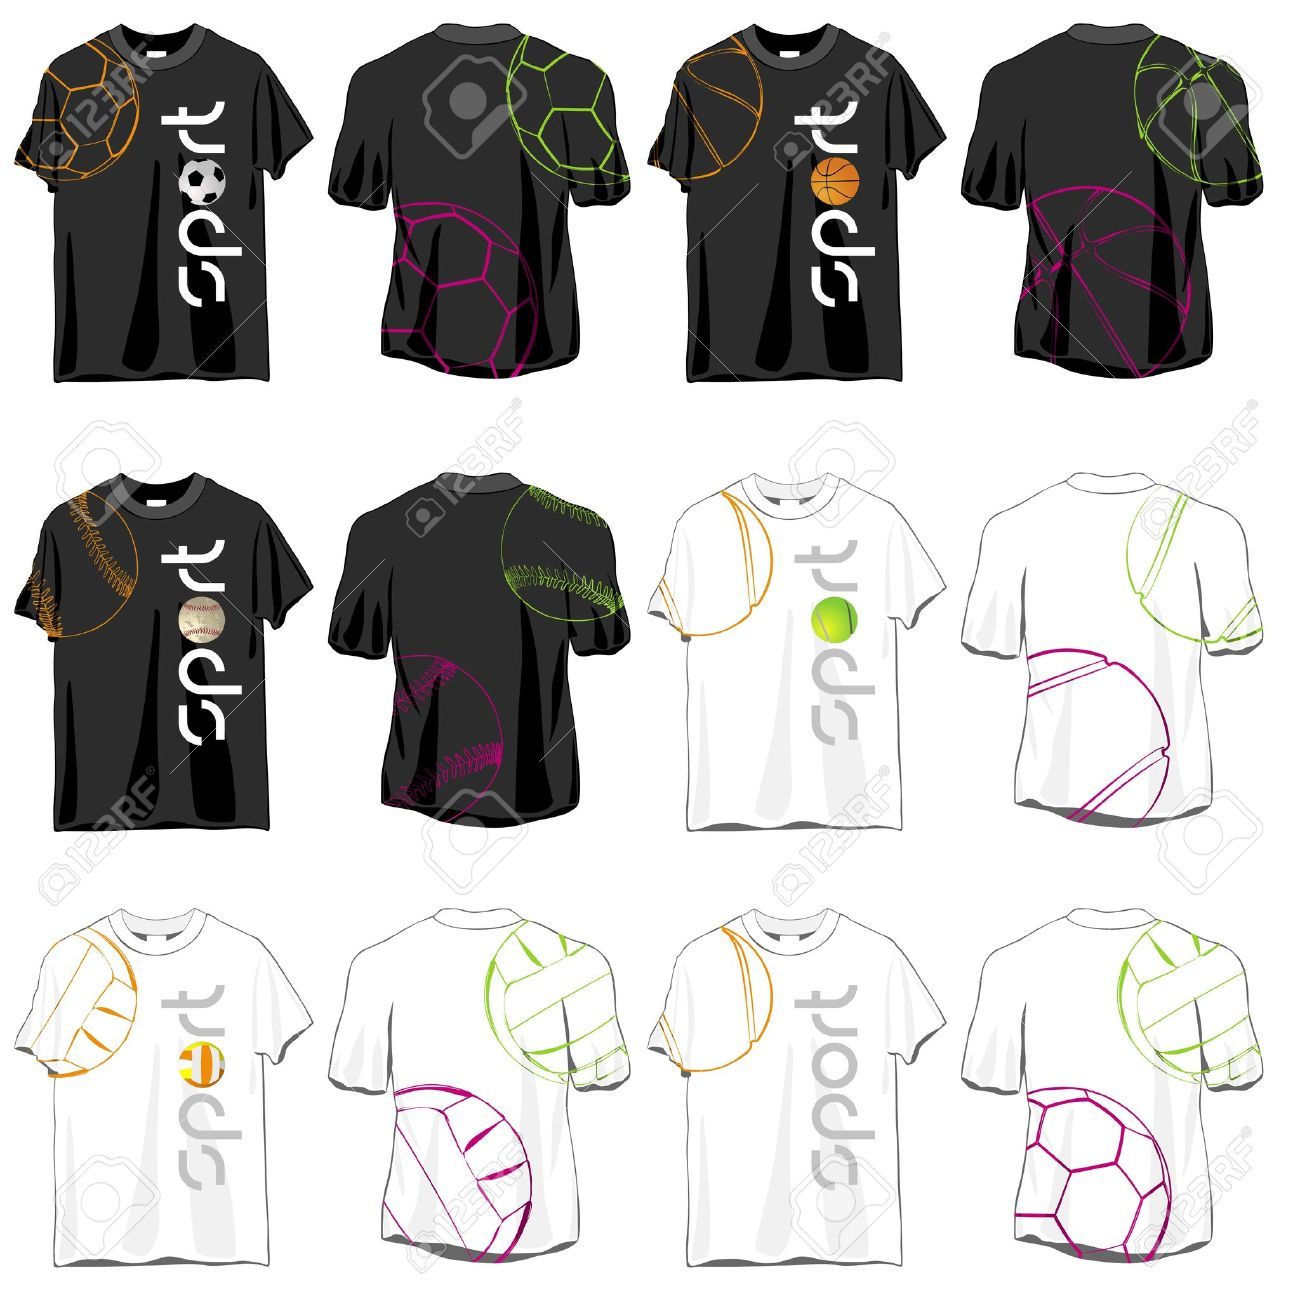 vector sport t shirts designs set - Volleyball T Shirt Design Ideas